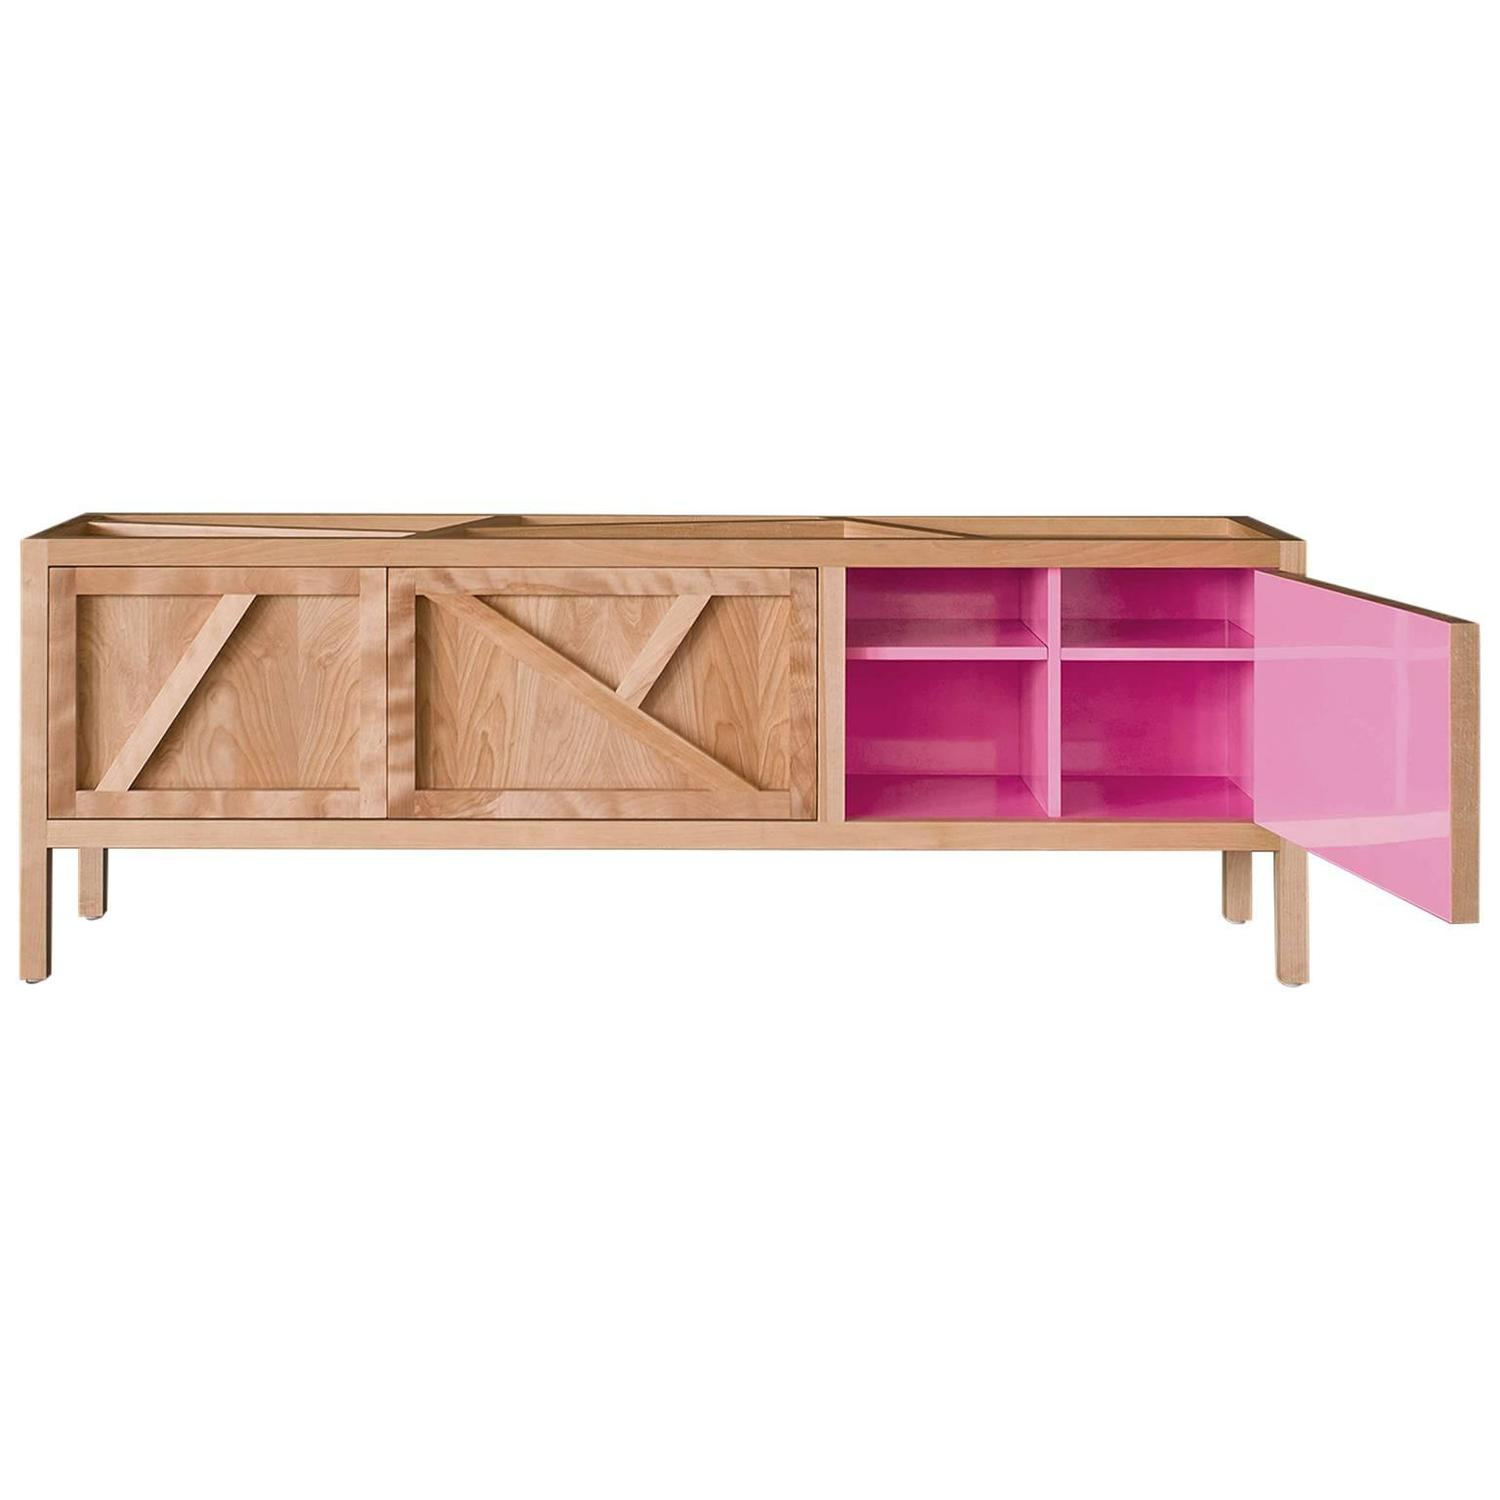 Inside Out Sideboard Cabinet Largo, Fine Lacquer Pink Credenza, Cupboard  For Sale At 1stdibs